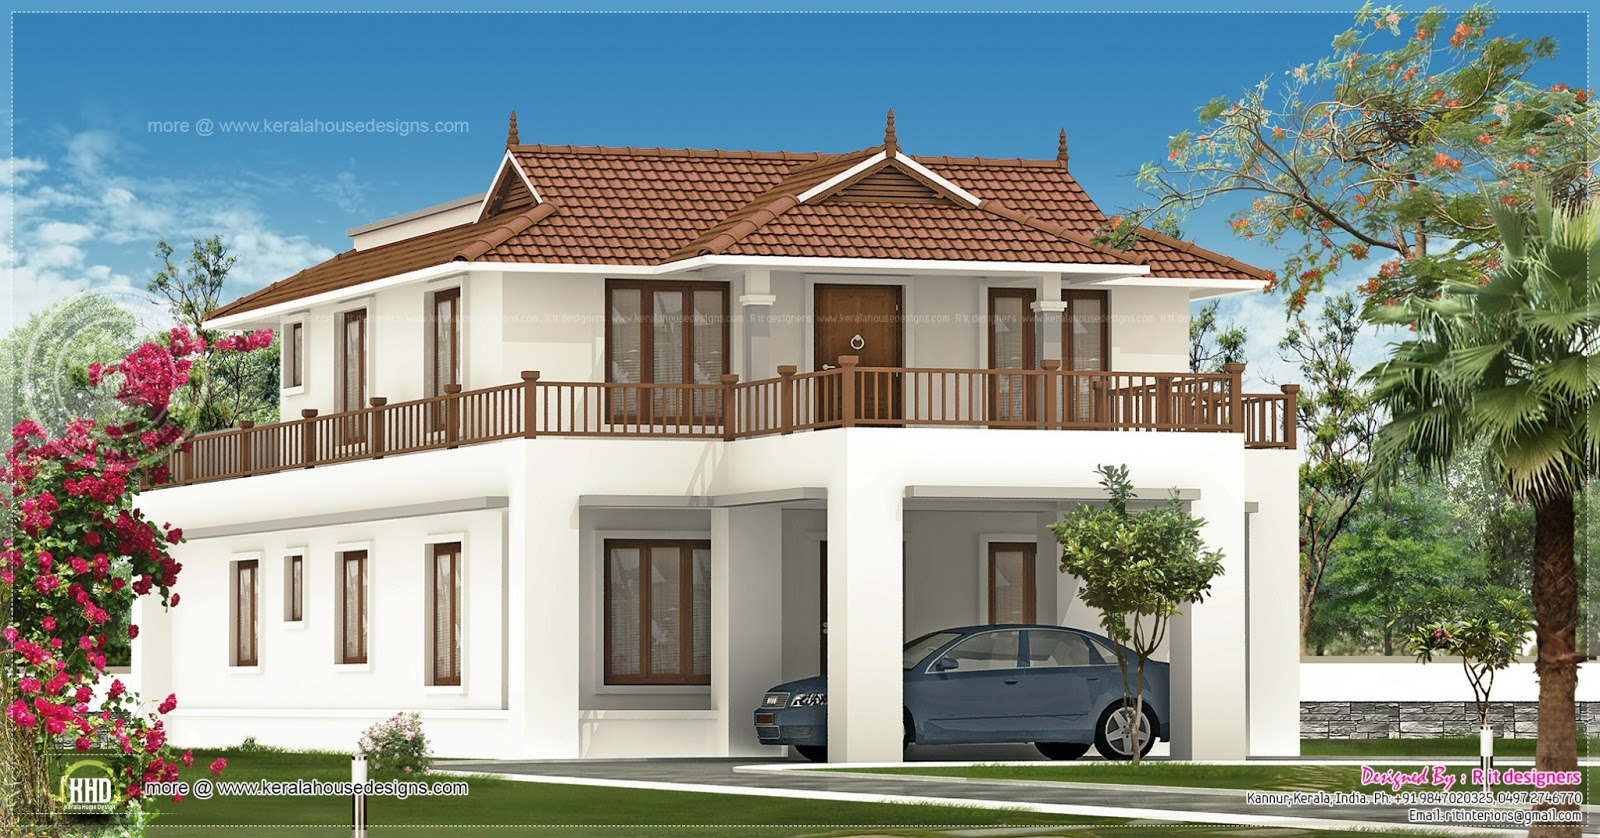 2820 square feet house exterior design home kerala plans for Home exterior design images